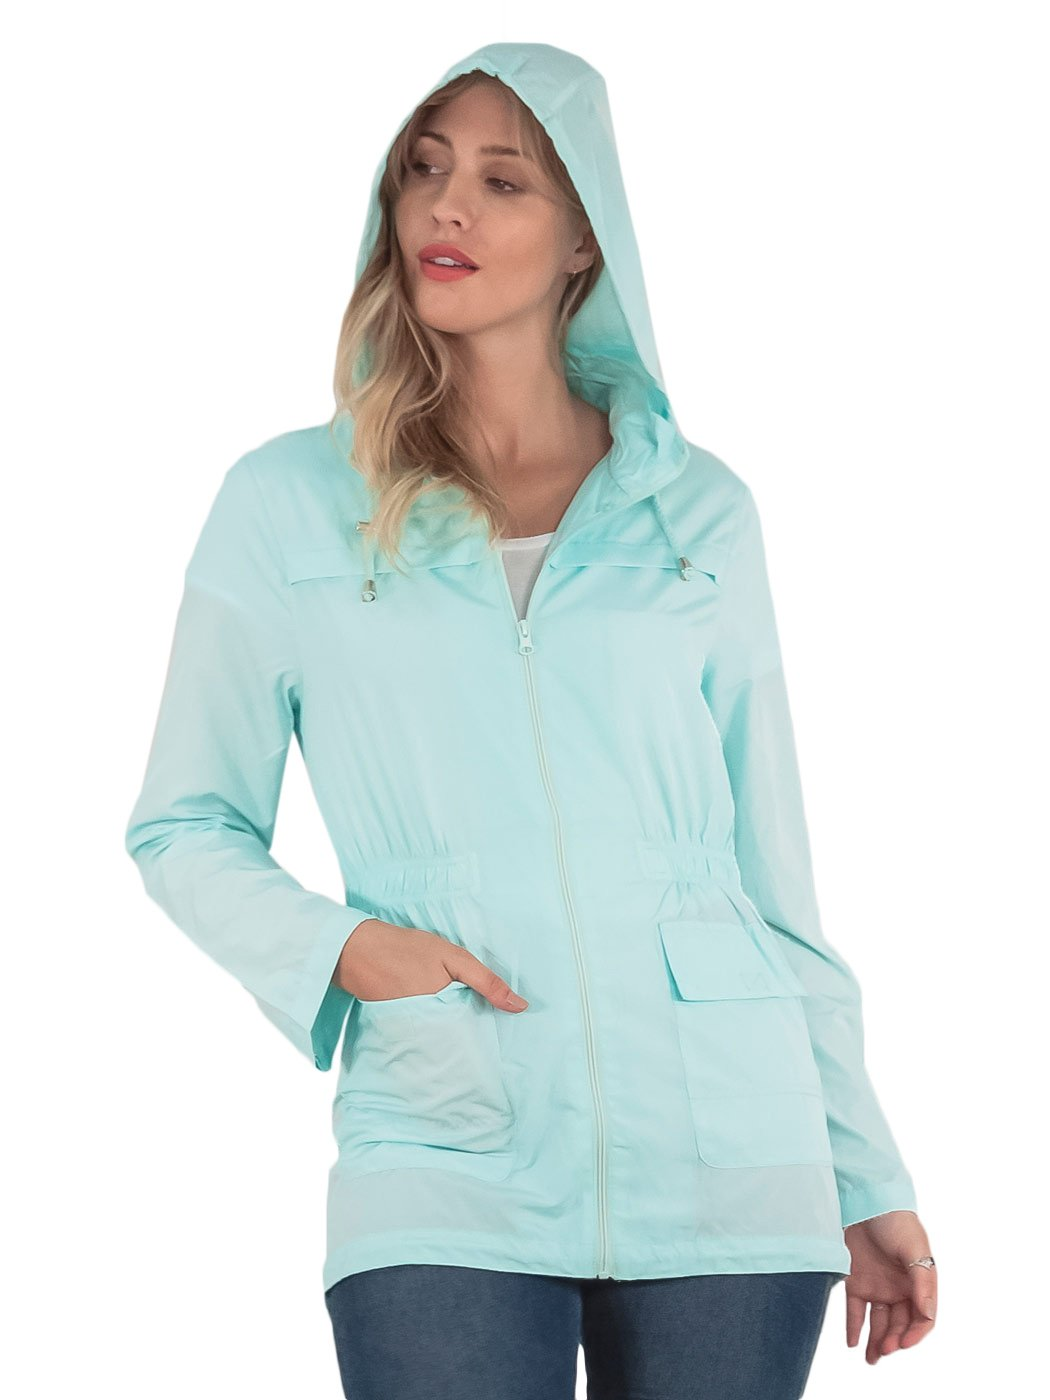 Women rain jacket with hood